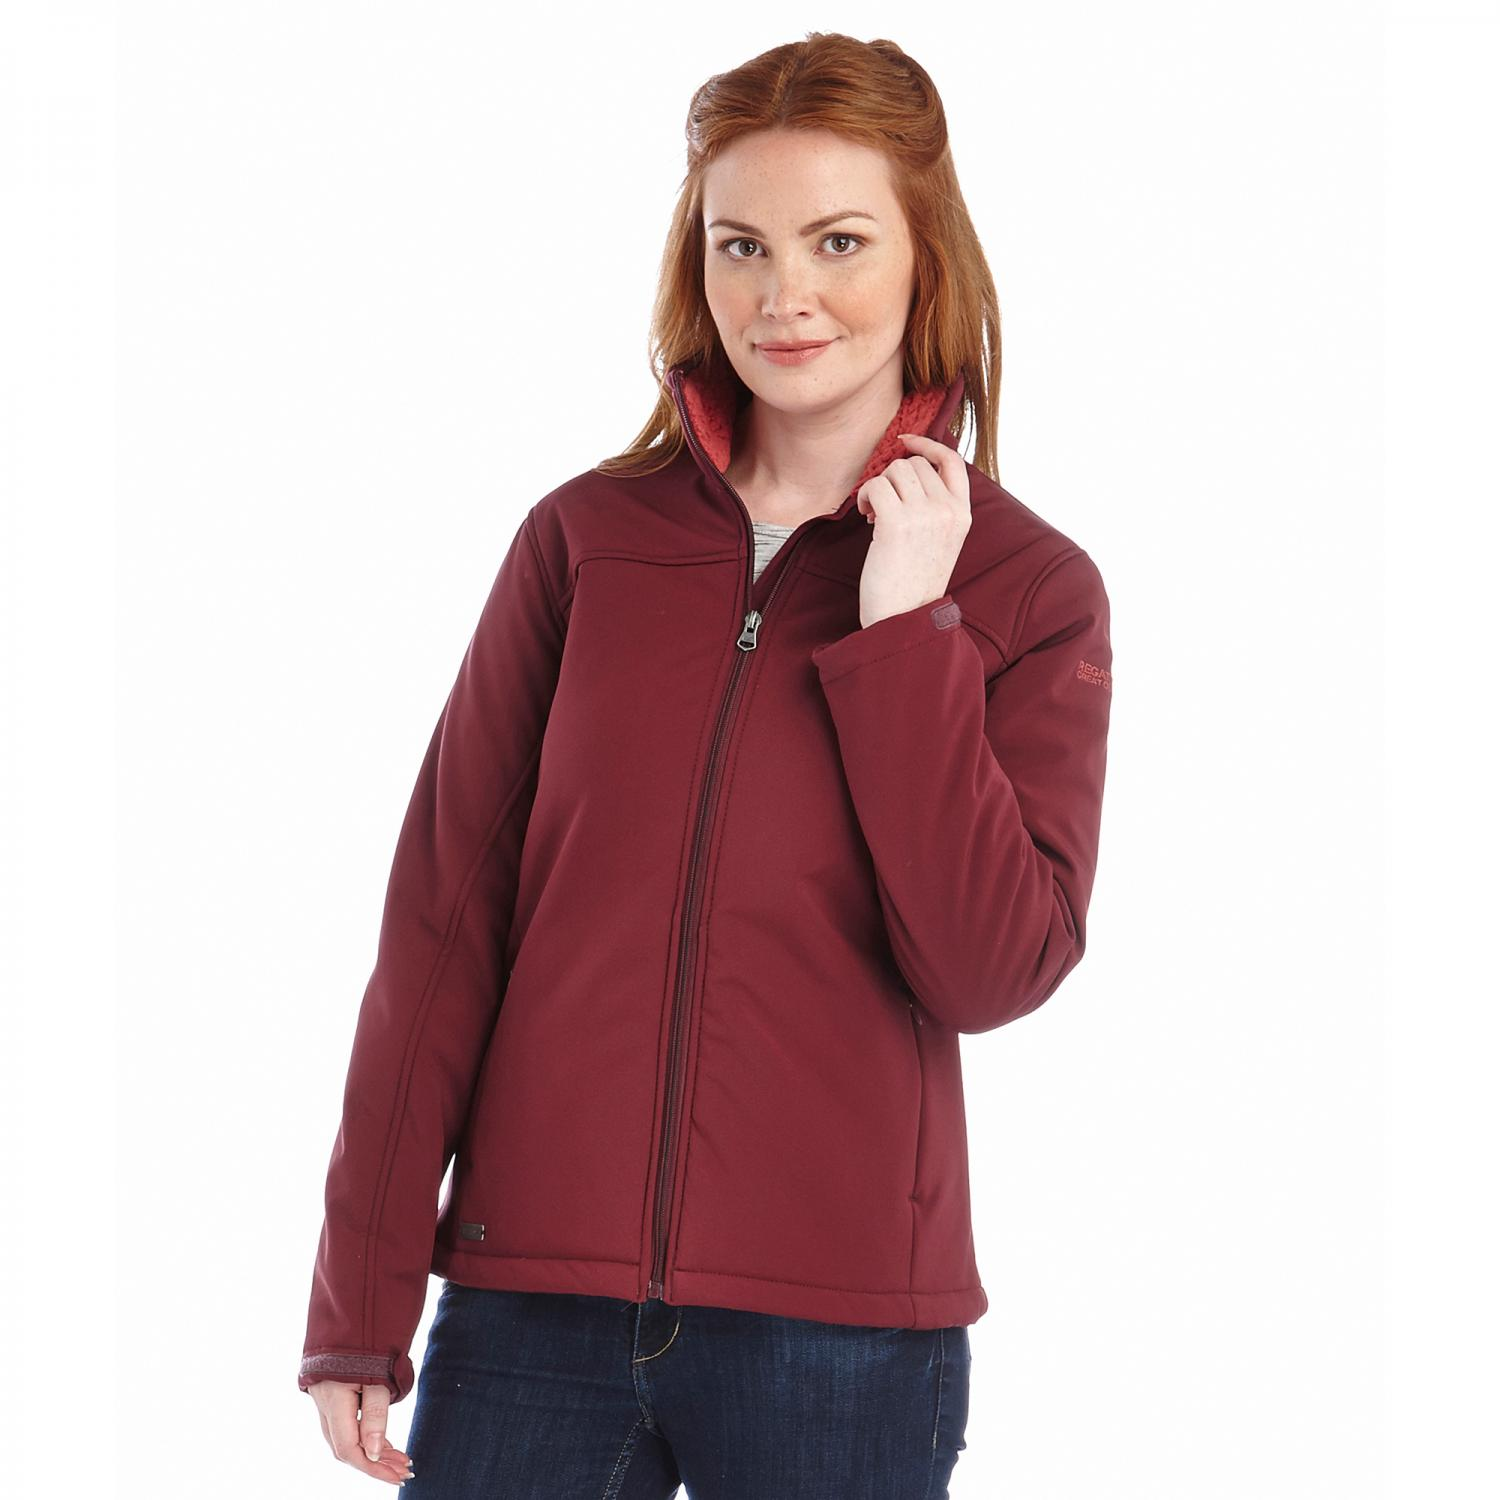 Tulsie Softshell Jacket Fig